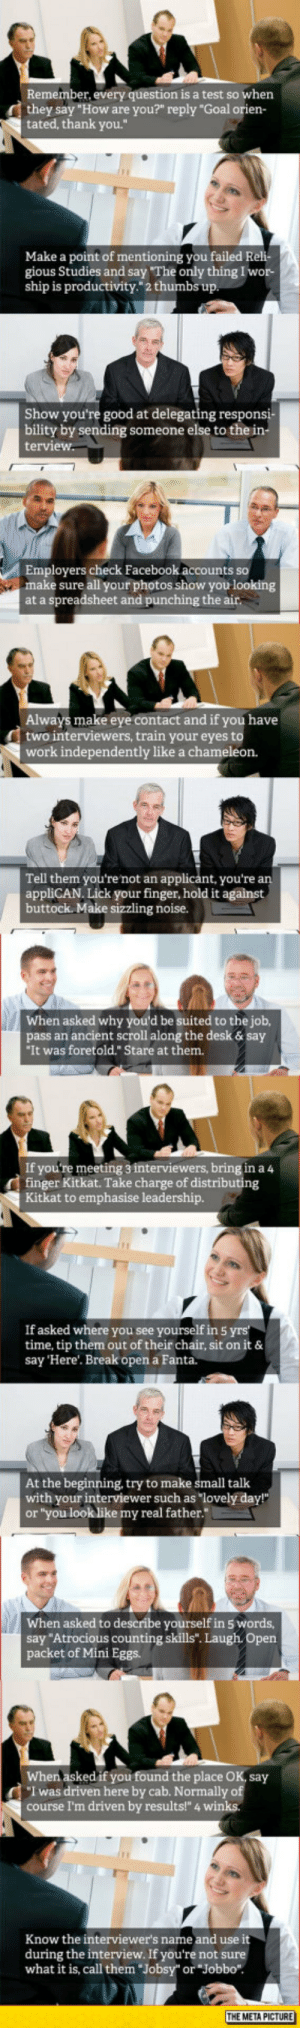 "awesomesthesia:  Some Good Job Interview Tips: Remember, every question is a test so when  they say ""How are you?"" reply ""Goal ori  tated, thank you.""  Make a point of mentioning you failed Reli-  gious Studies and say The only thing I wor-  ship is productivity."" 2 thumbs up.  Show you're good at delegating respon  bility by sending someone else to the in  terview  Employers check Facebook accounts so  make sure all your photos show you looking  at a spreadsheet and punching the air.  Always make eye contact and if you have  two interviewers, train your eyes to  work independently like a chameleon.  Tell them you're not an applicánt, you're a  appliCAN. Lick your finger, hold it against  buttock. Make sizzling noise.  When asked why you'd be suited to the job,  pass an ancient scroll along the desk& say  It was foretold."" Stare at them.  If you're meeting 3 interviewers, bring in a 4  finger Kitkat. Take charge of di  ng  Kitkat to emphasise leadership.  If asked where you see yourself in 5 yrs  time, tip them out of their chair, sit on it &  say 'Here'. Break open a Fanta.  At the beginning, try to make small talk  with your interviewer such as ""lovely day!""  or ""you look like my real father.  When asked to describe yourself in 5 words  say ""Atrocious counting skills"". Laugh. Open  packet of Mini Eggs.  When asked if you found the place OK, say  I was driven here by cab. Normally of  course I'm driven by results!"" 4 winks  Know the interviewer's name and use it  during the interview. If you're not sure  what it is, call them Jobsy"" or ""Jobbo"".  THE META PICTURE awesomesthesia:  Some Good Job Interview Tips"